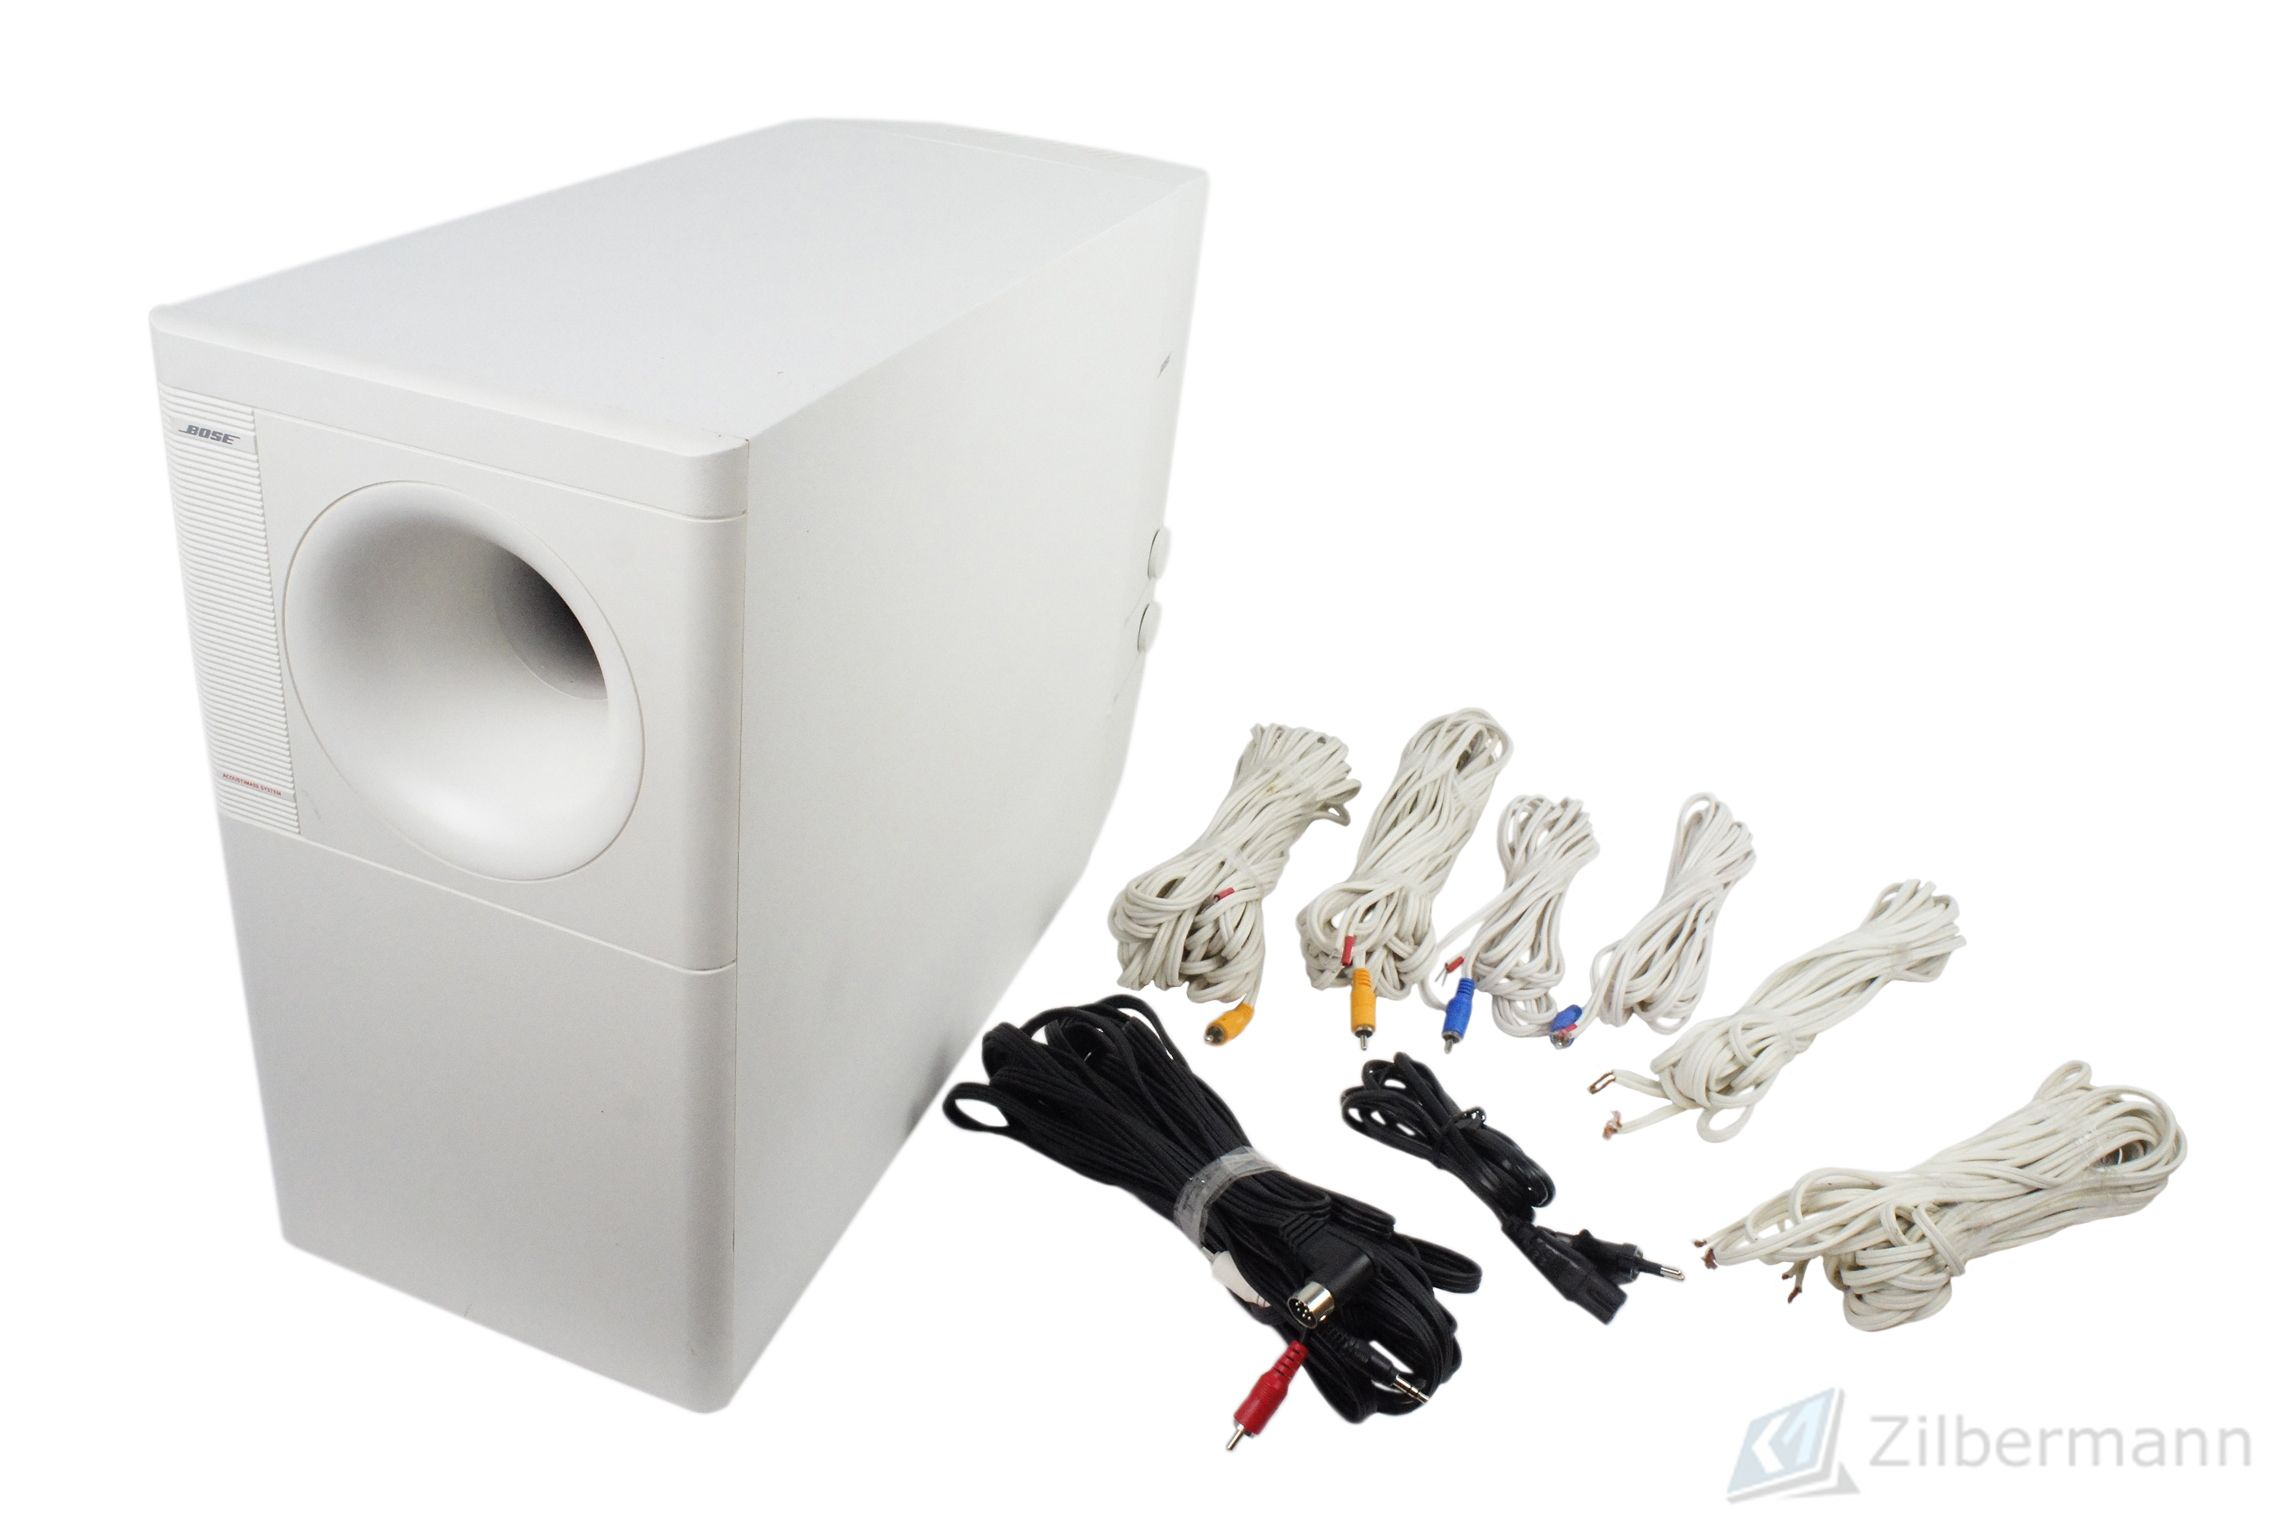 Bose_Powered_Acoustimass_8_Subwoofer_Weiss_14